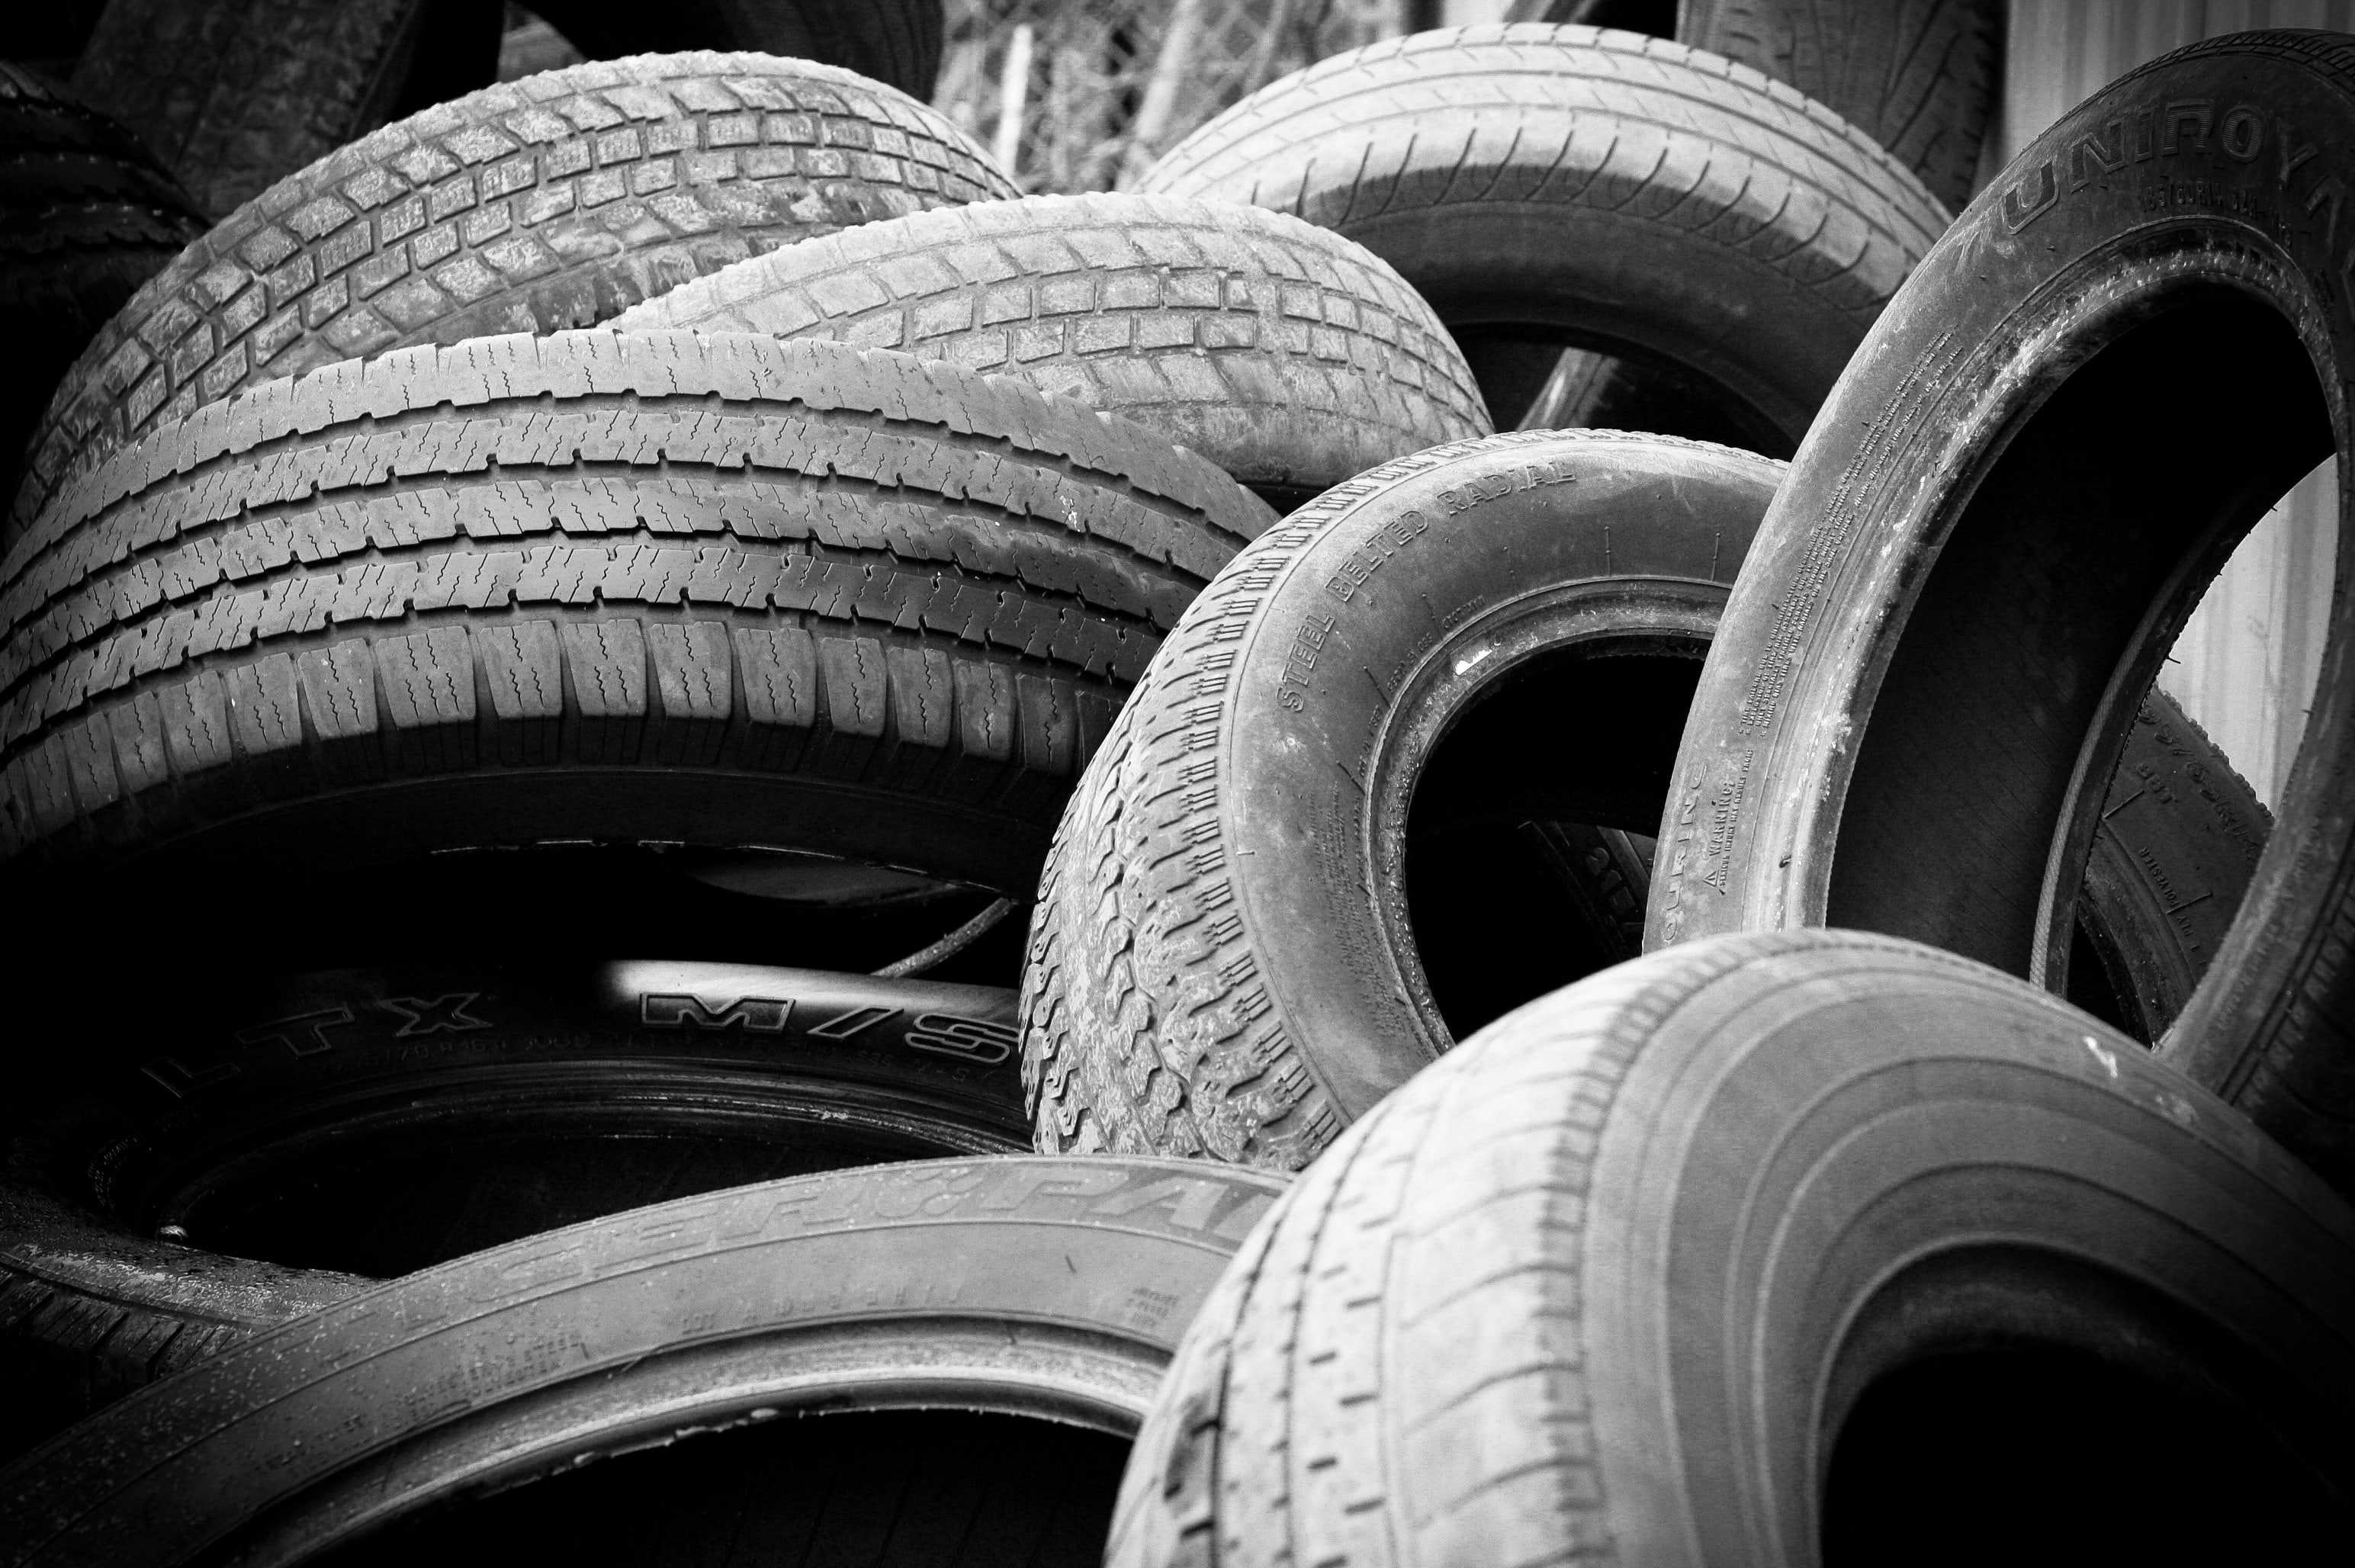 Old tyres dumped in a pile.